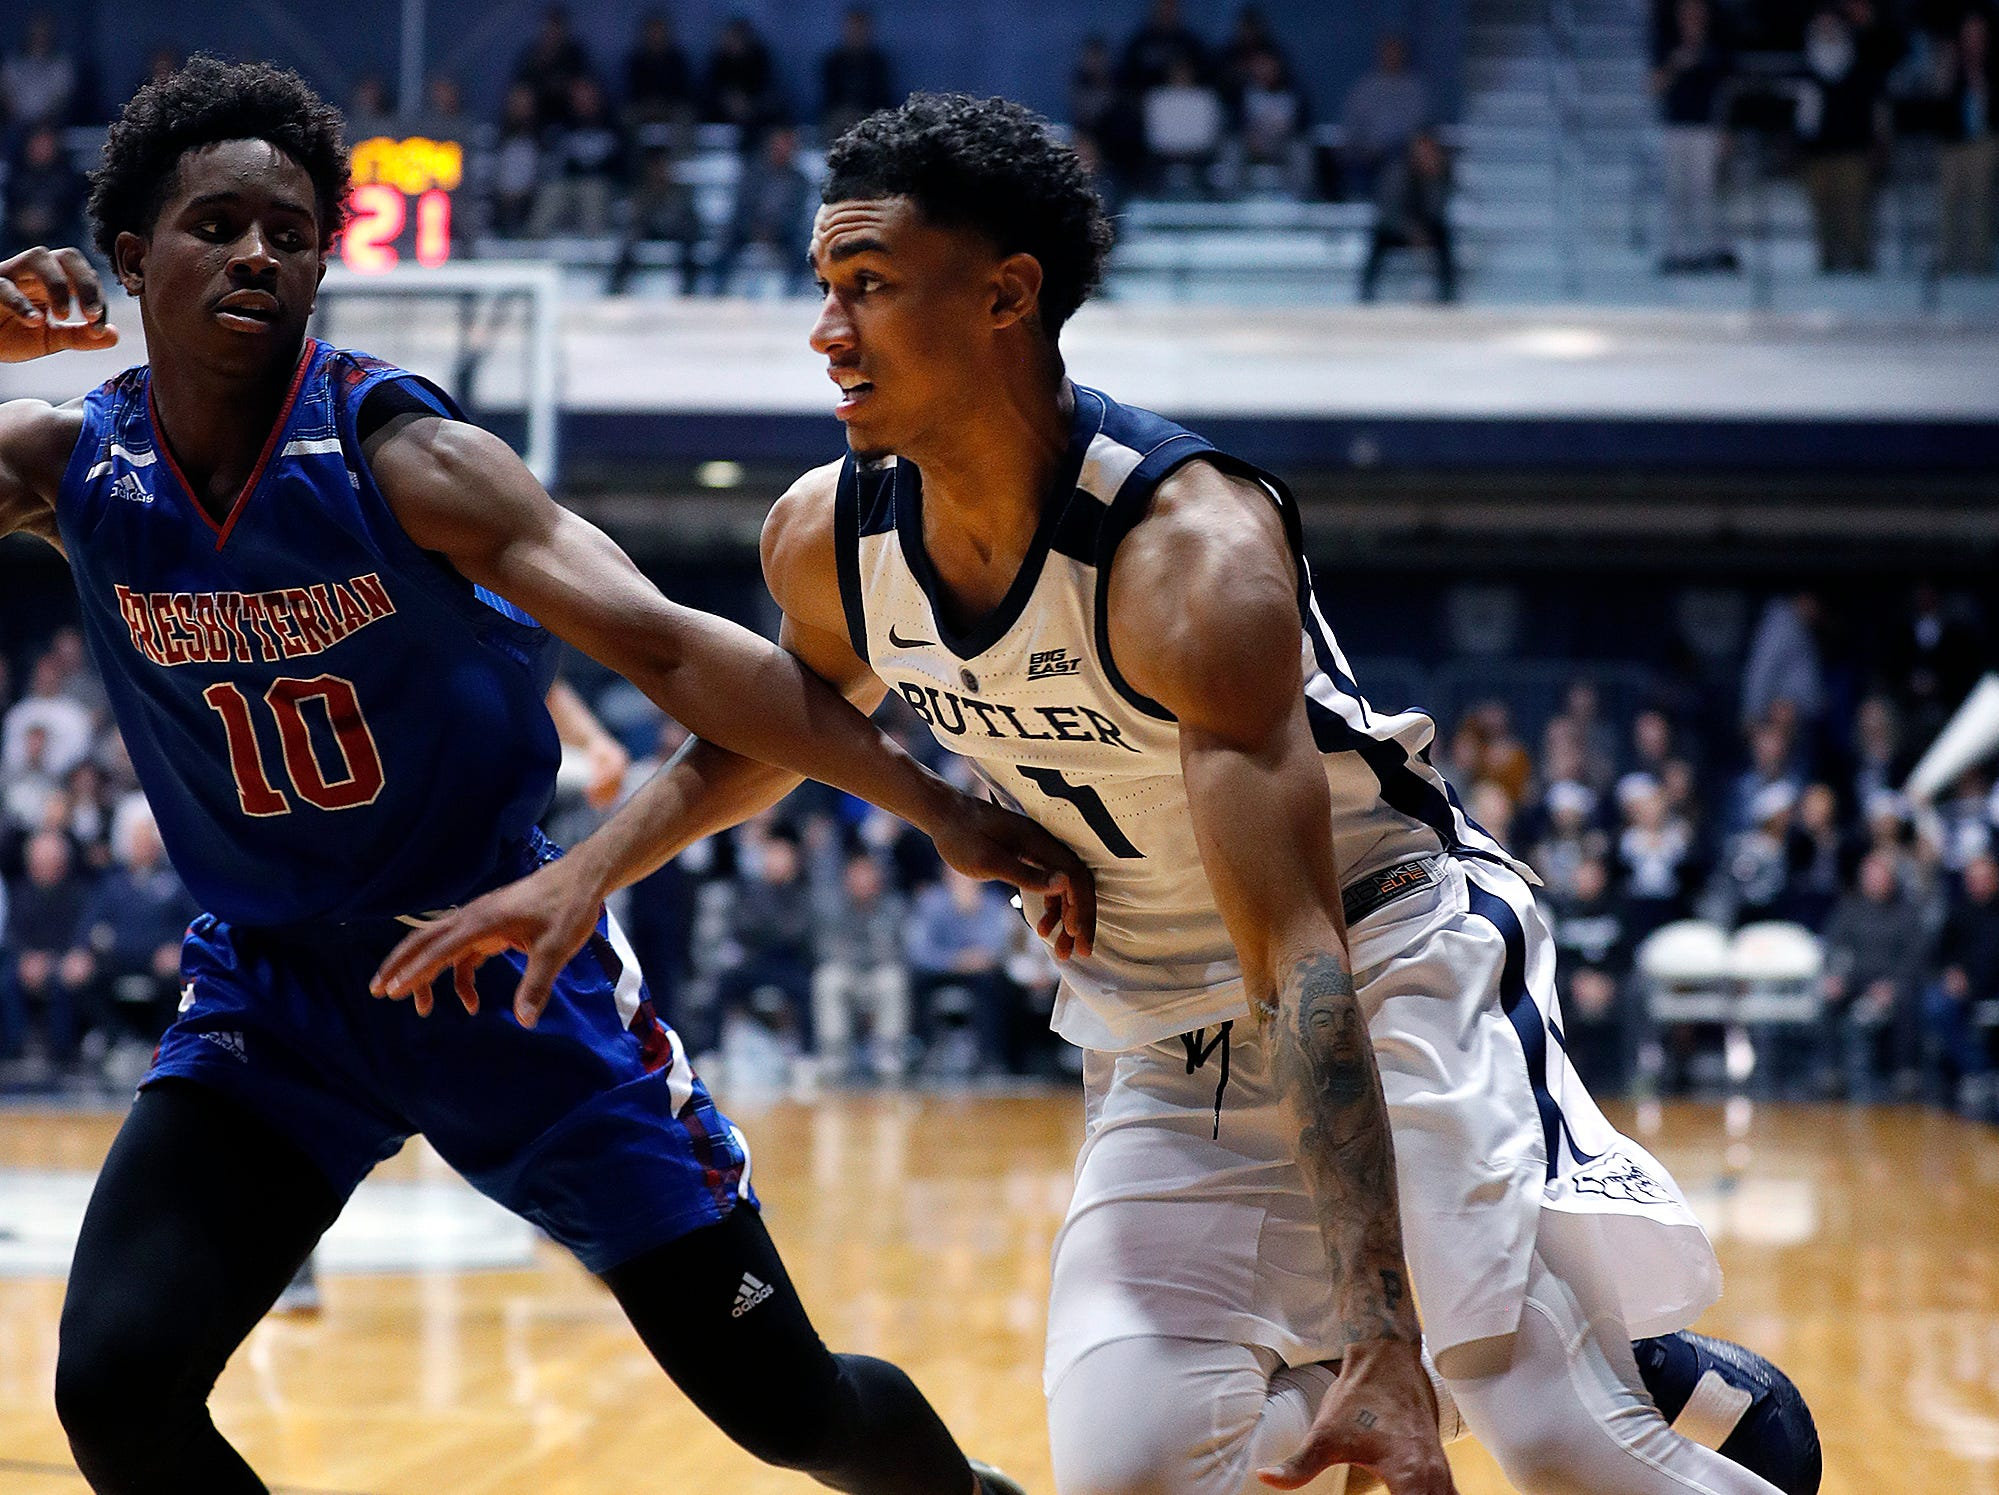 Butler Bulldogs forward Jordan Tucker (1) drives on Presbyterian Blue Hose guard Adam Flagler (10)  in the second half of their game at Hinkle Fieldhouse on Monday, Dec. 18, 2018.